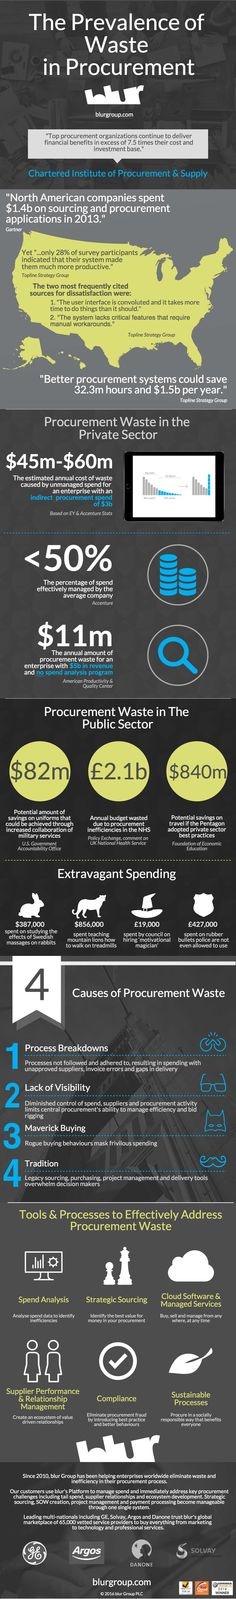 The Prevalence of Waste in Procurement infographic.   For more infographics: http://owl.li/XO8vZ